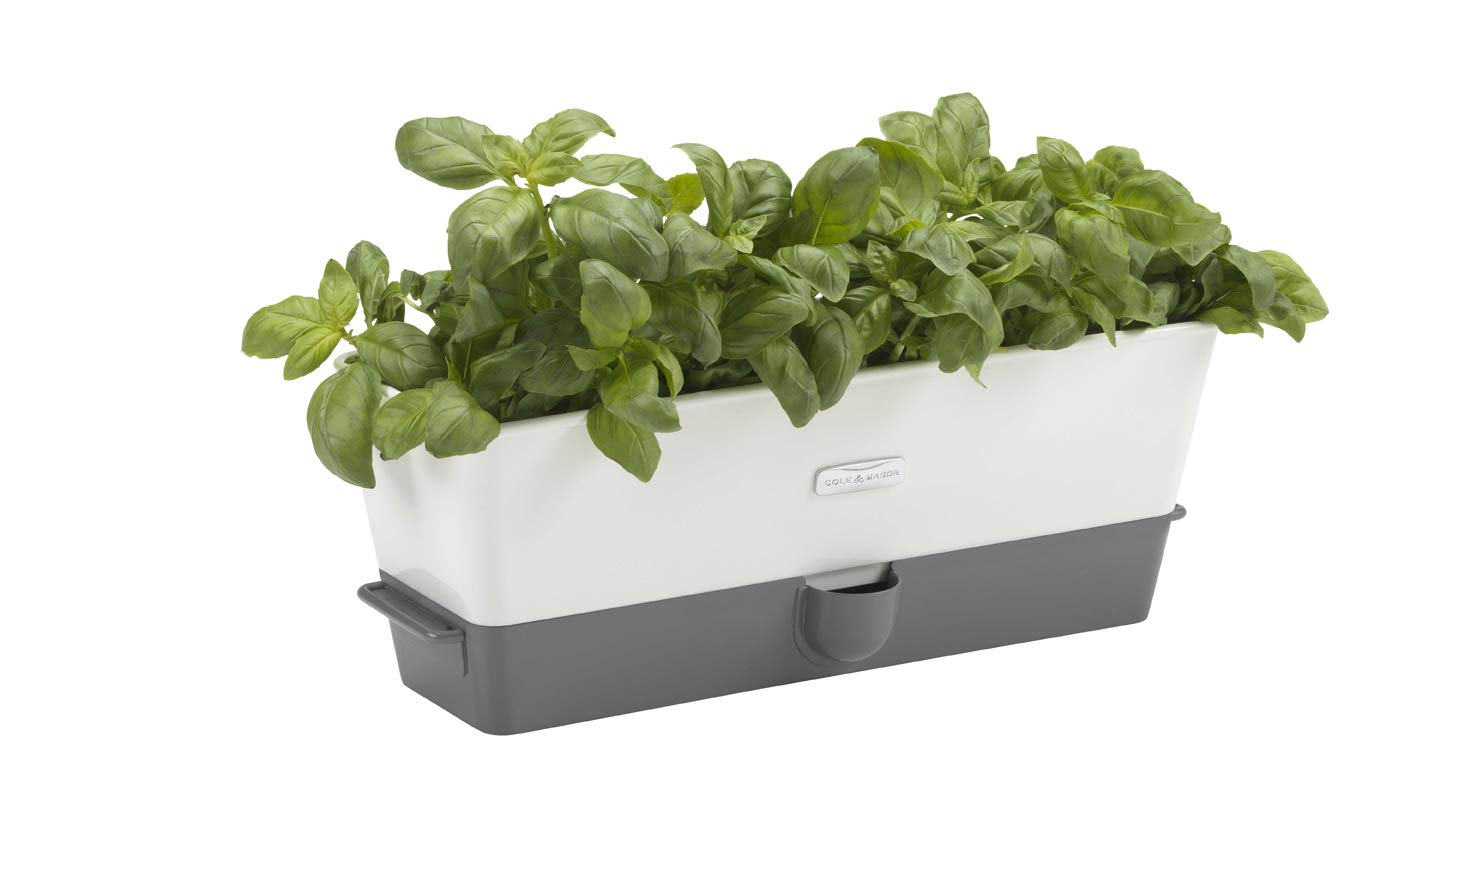 Cole Mason Fresh Herb Range Self-Watering Potted Herb Keeper, Enamel Coated Steel, White and Grey, Triple